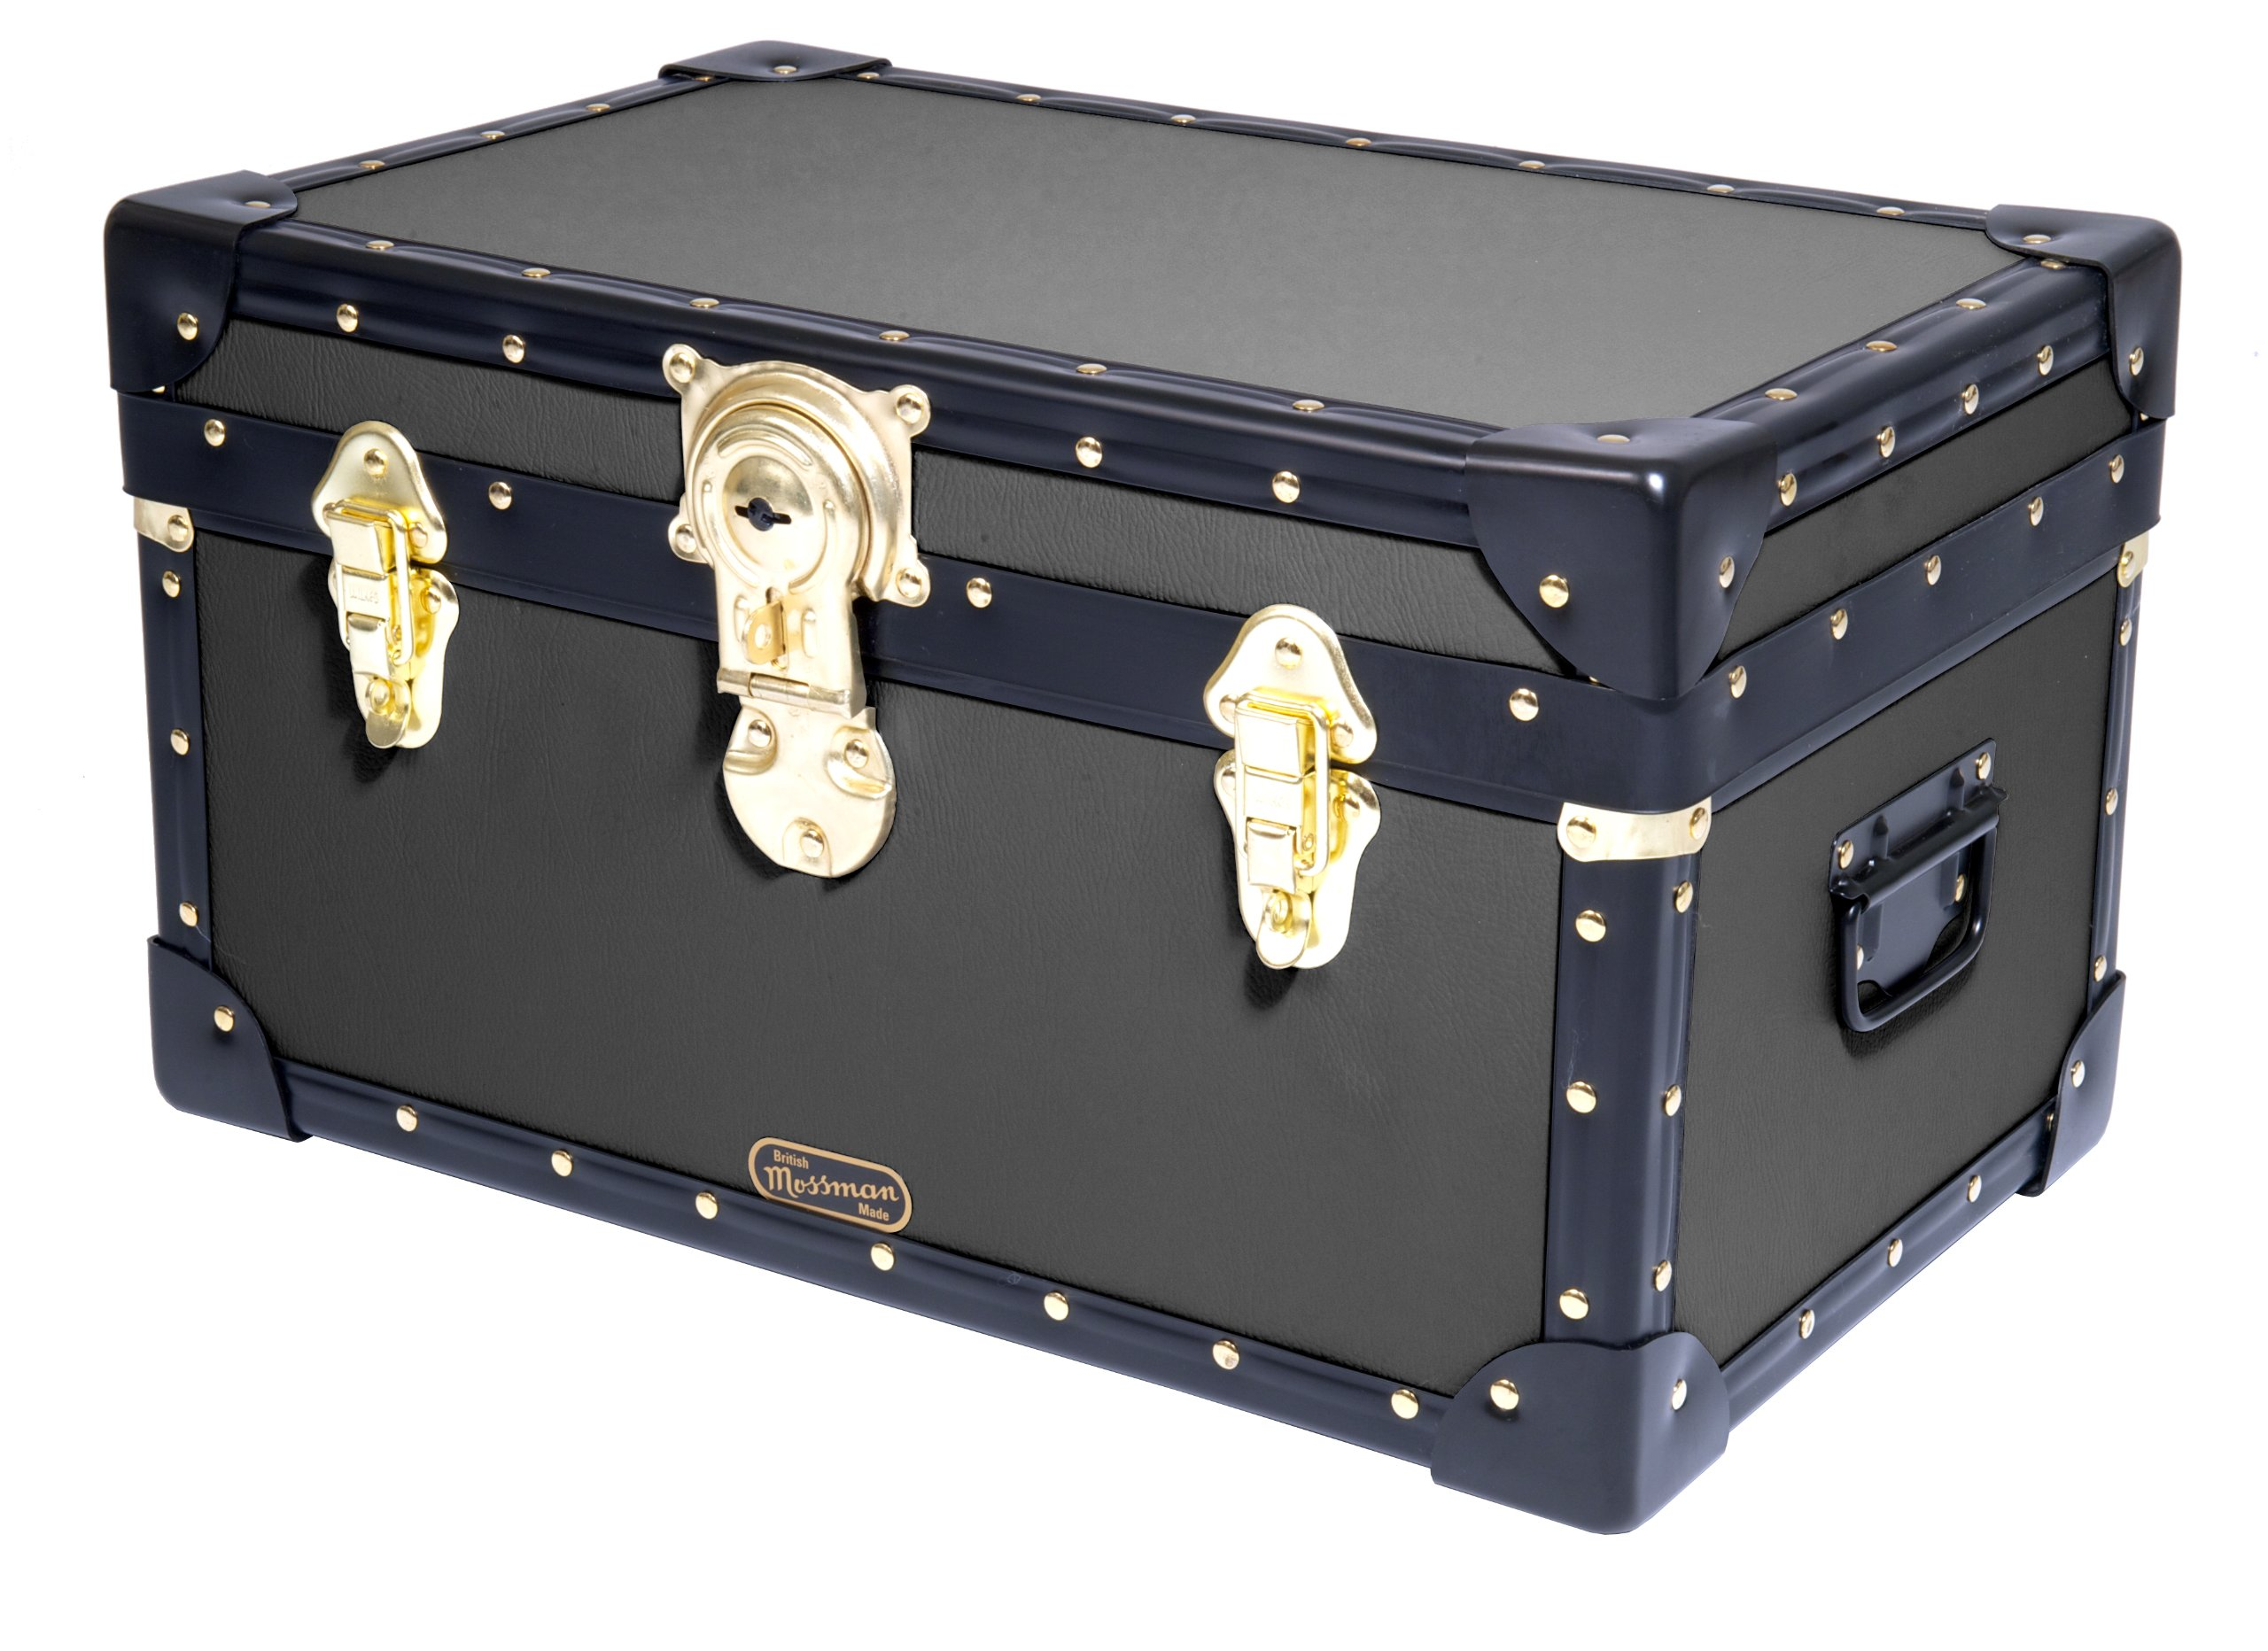 Genial Original Mossman TUCK BOX Trunk CABIN Lock Storage Box Chest Steamer Case  Home Furniture British Made